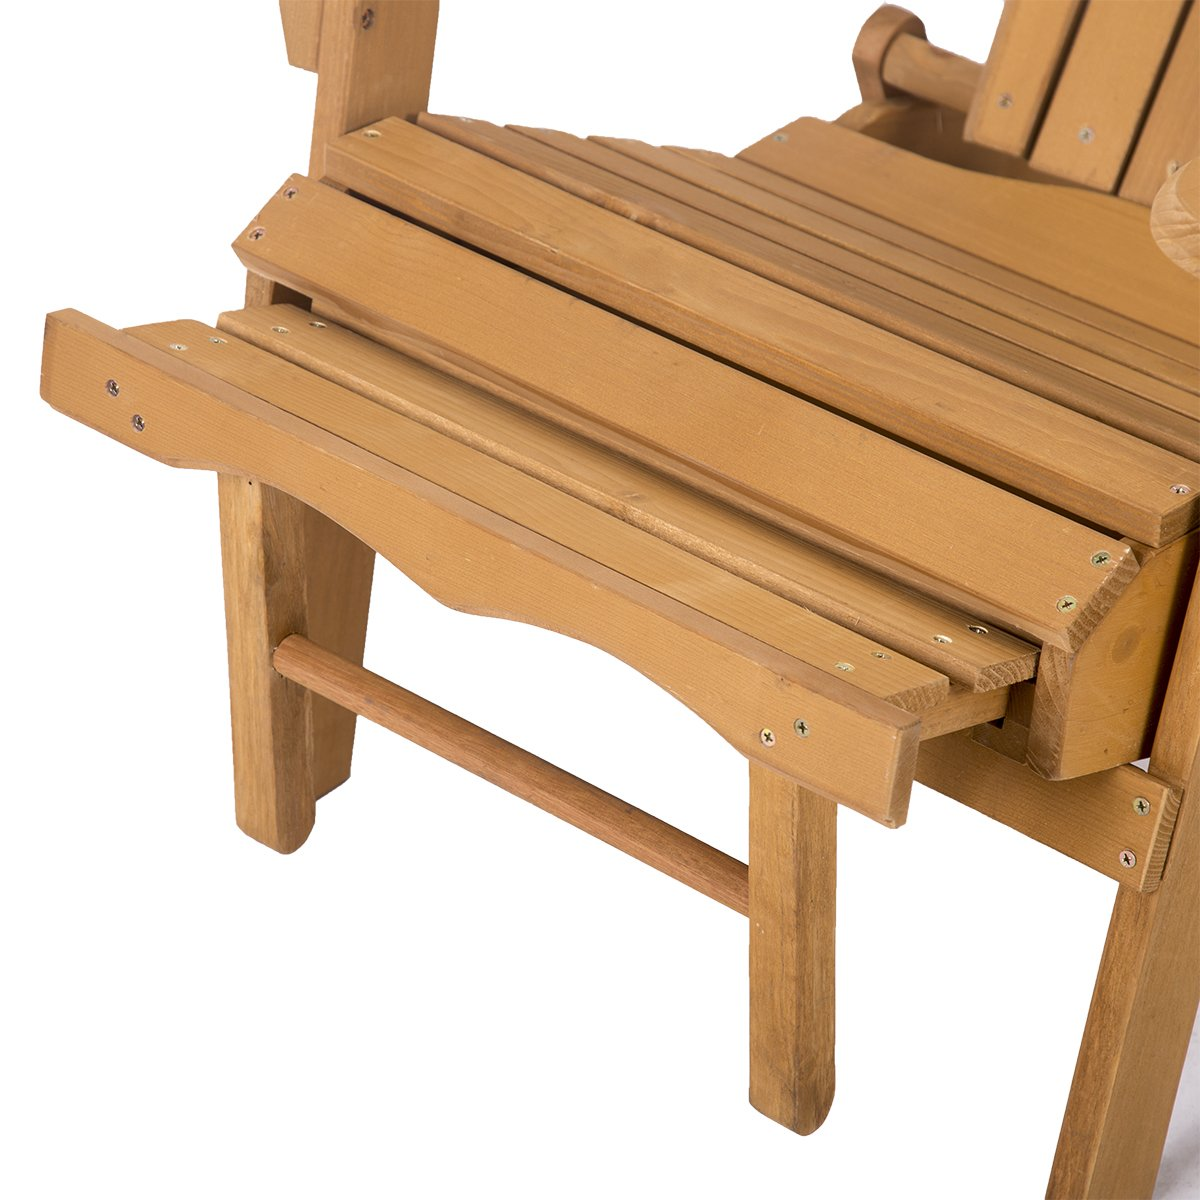 FDW Outdoor Wood Adirondack Chair Foldable w/Pull Out Ottoman Patio Furniture by FDW (Image #4)